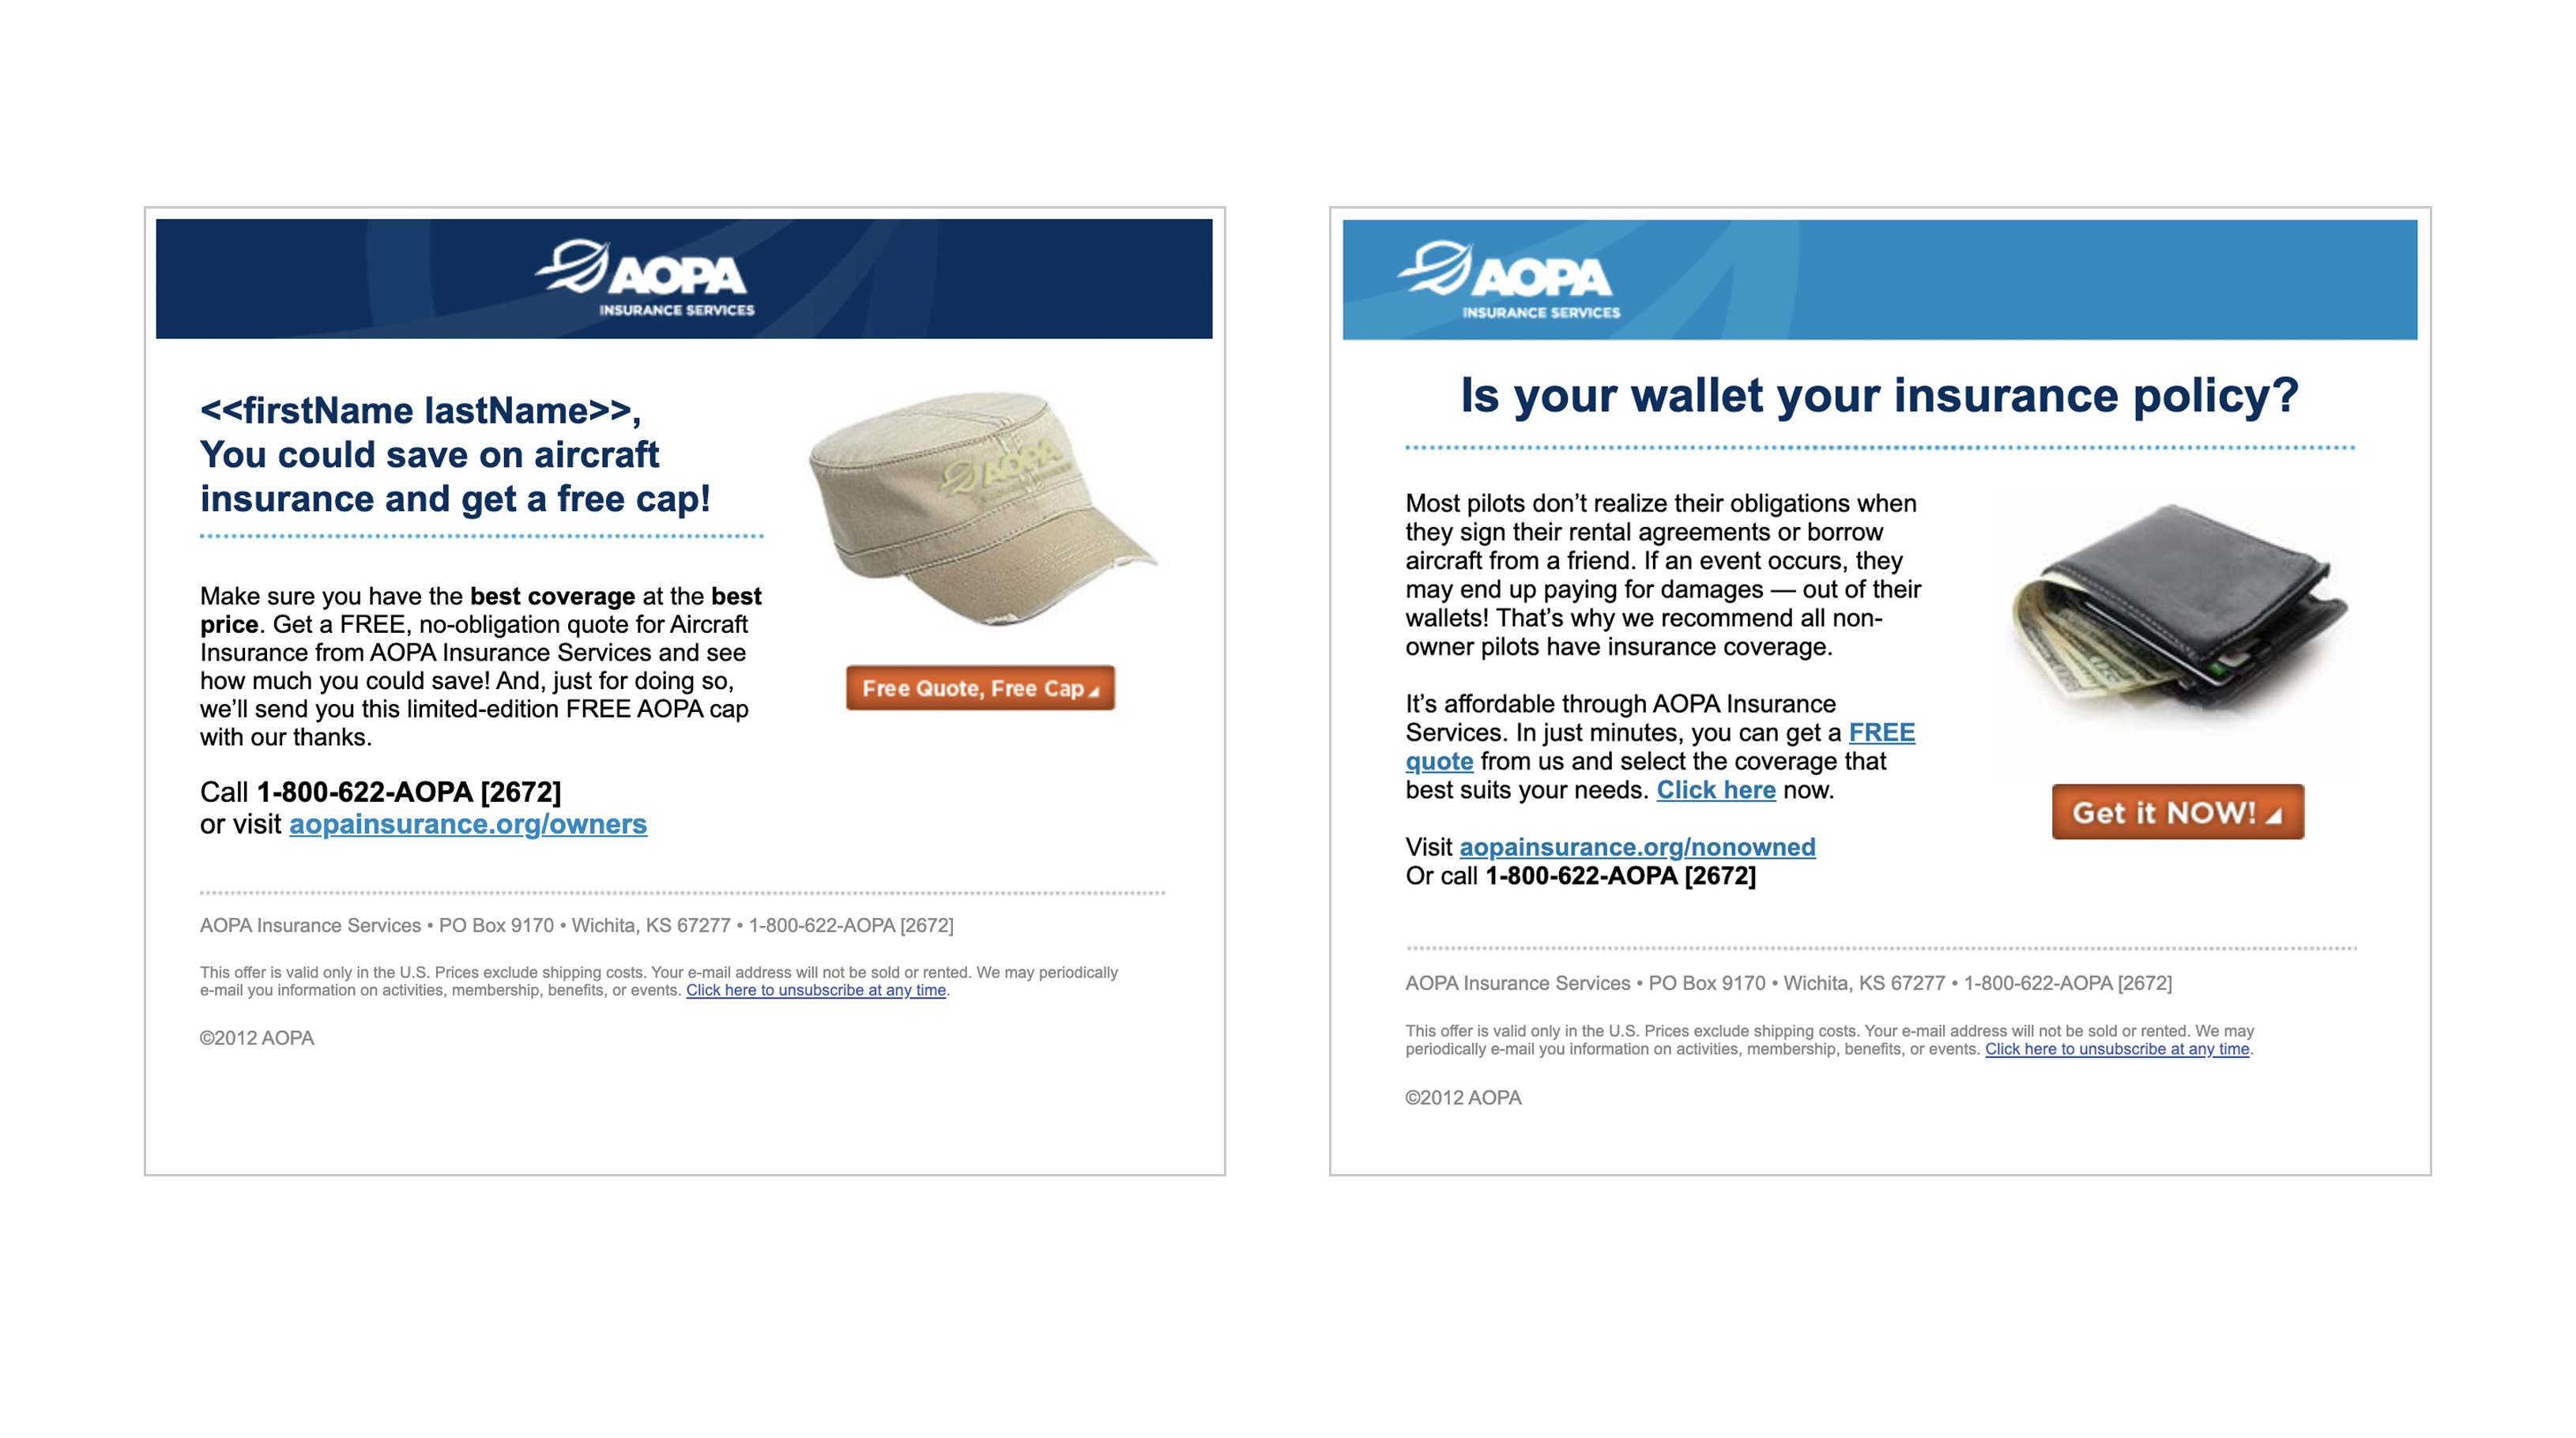 AOPA Insurance Services HTML emails